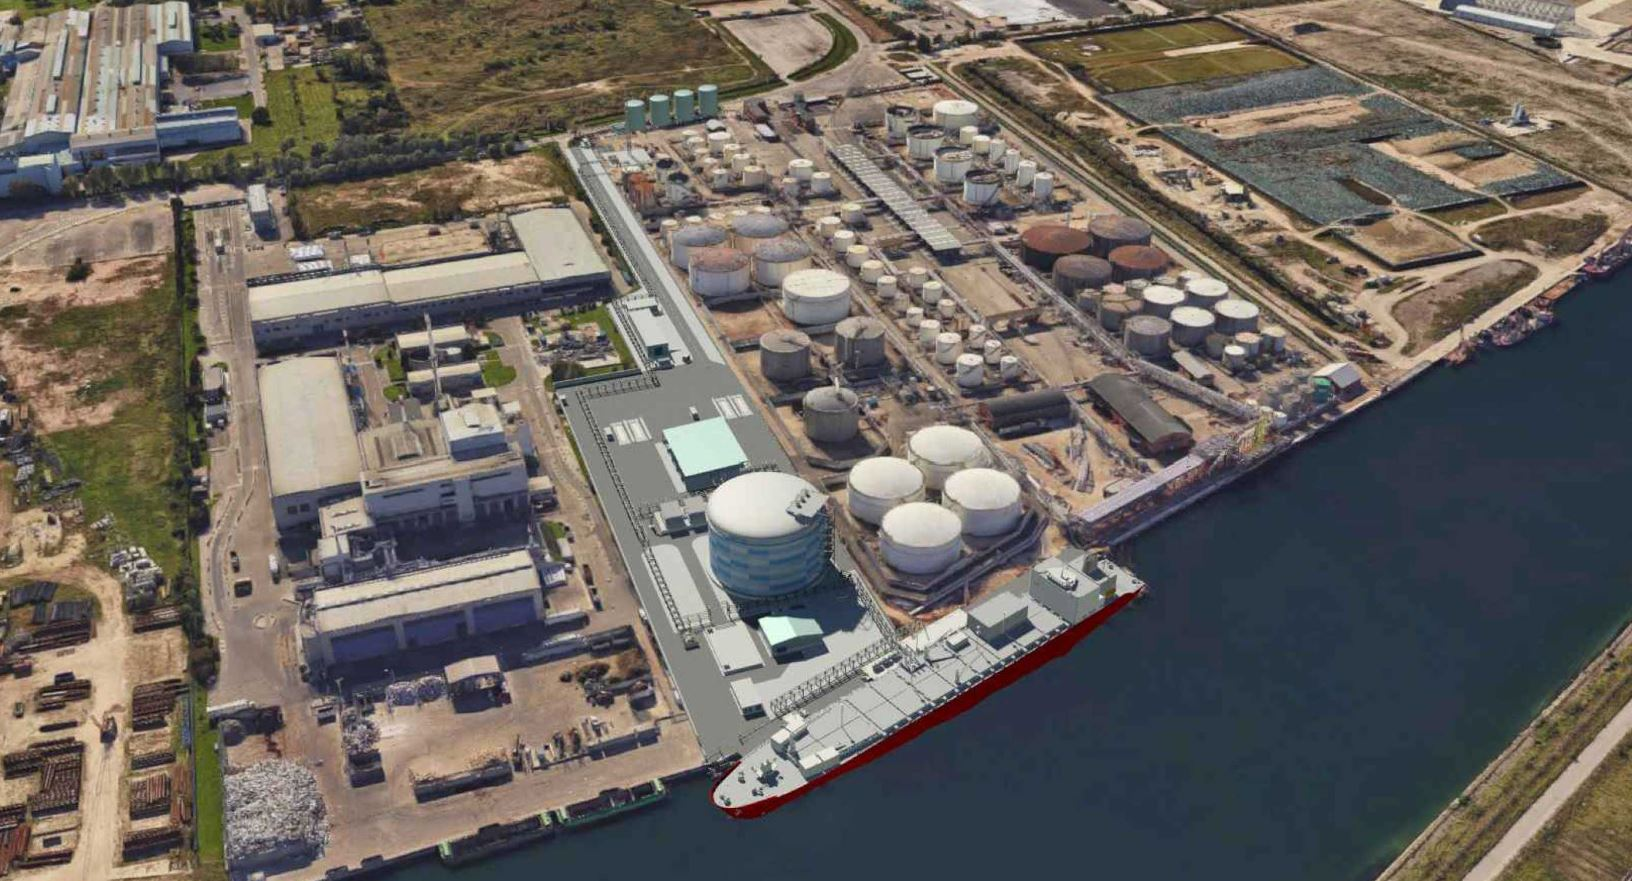 Venice LNG gets approval to build Italian small-scale terminal